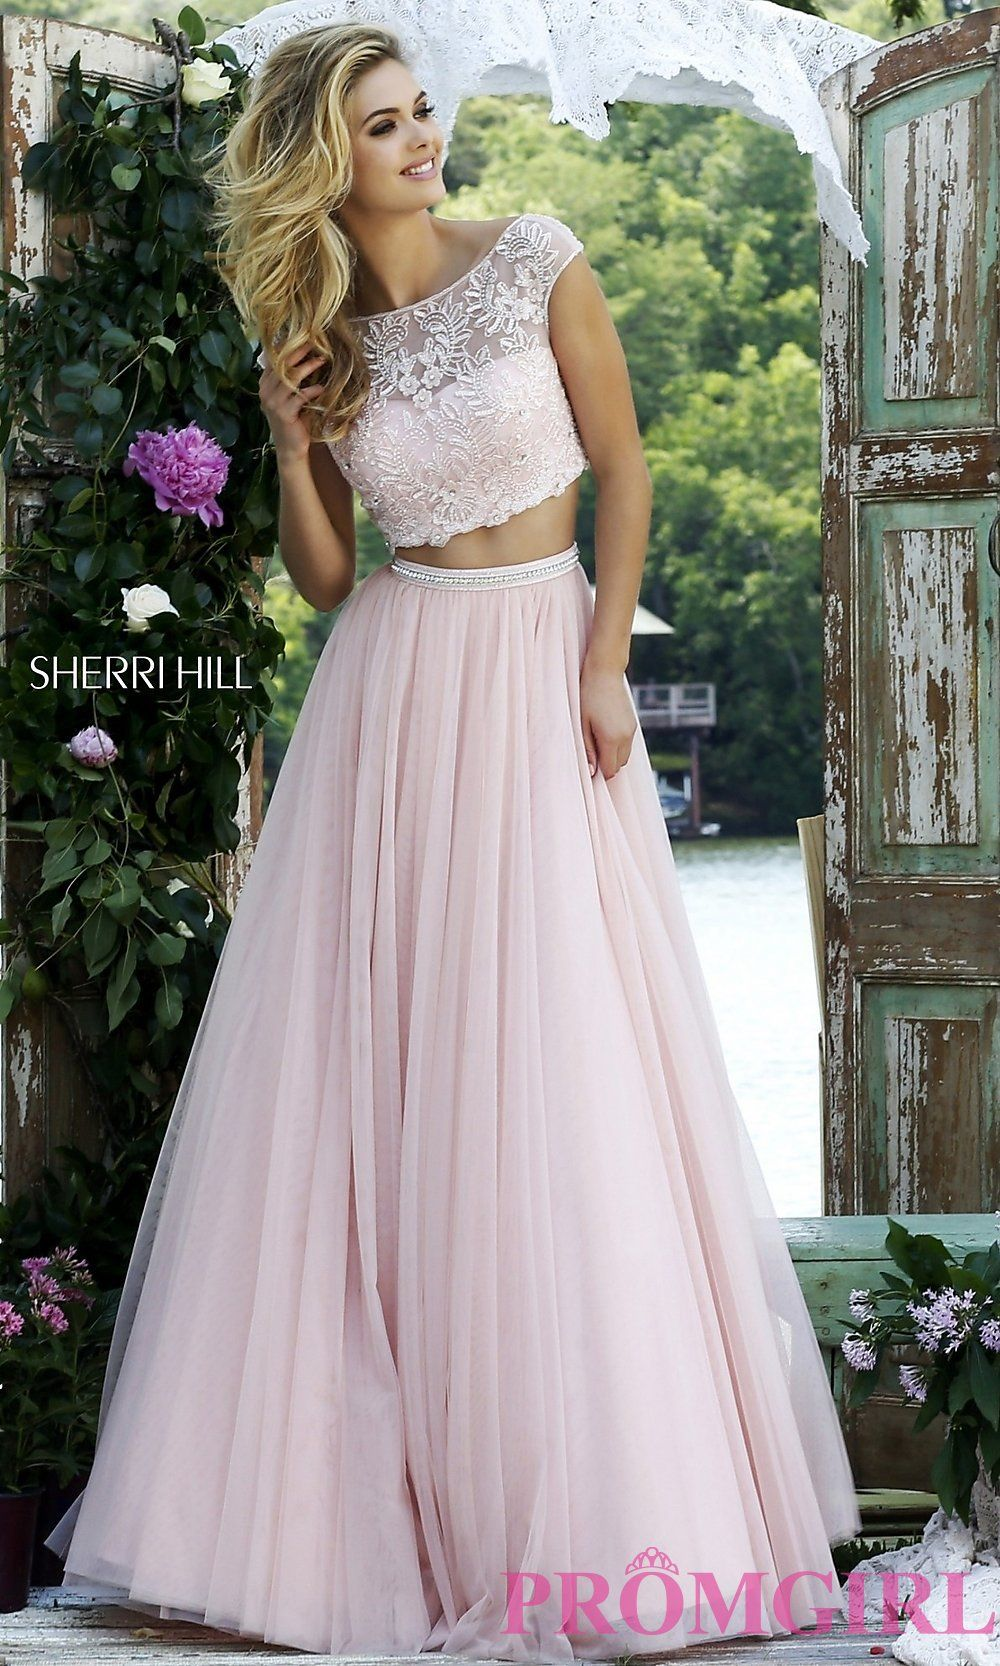 Sherri Hill 50038 | Prom 2016 Collection | Pinterest | Prom, Formal ...